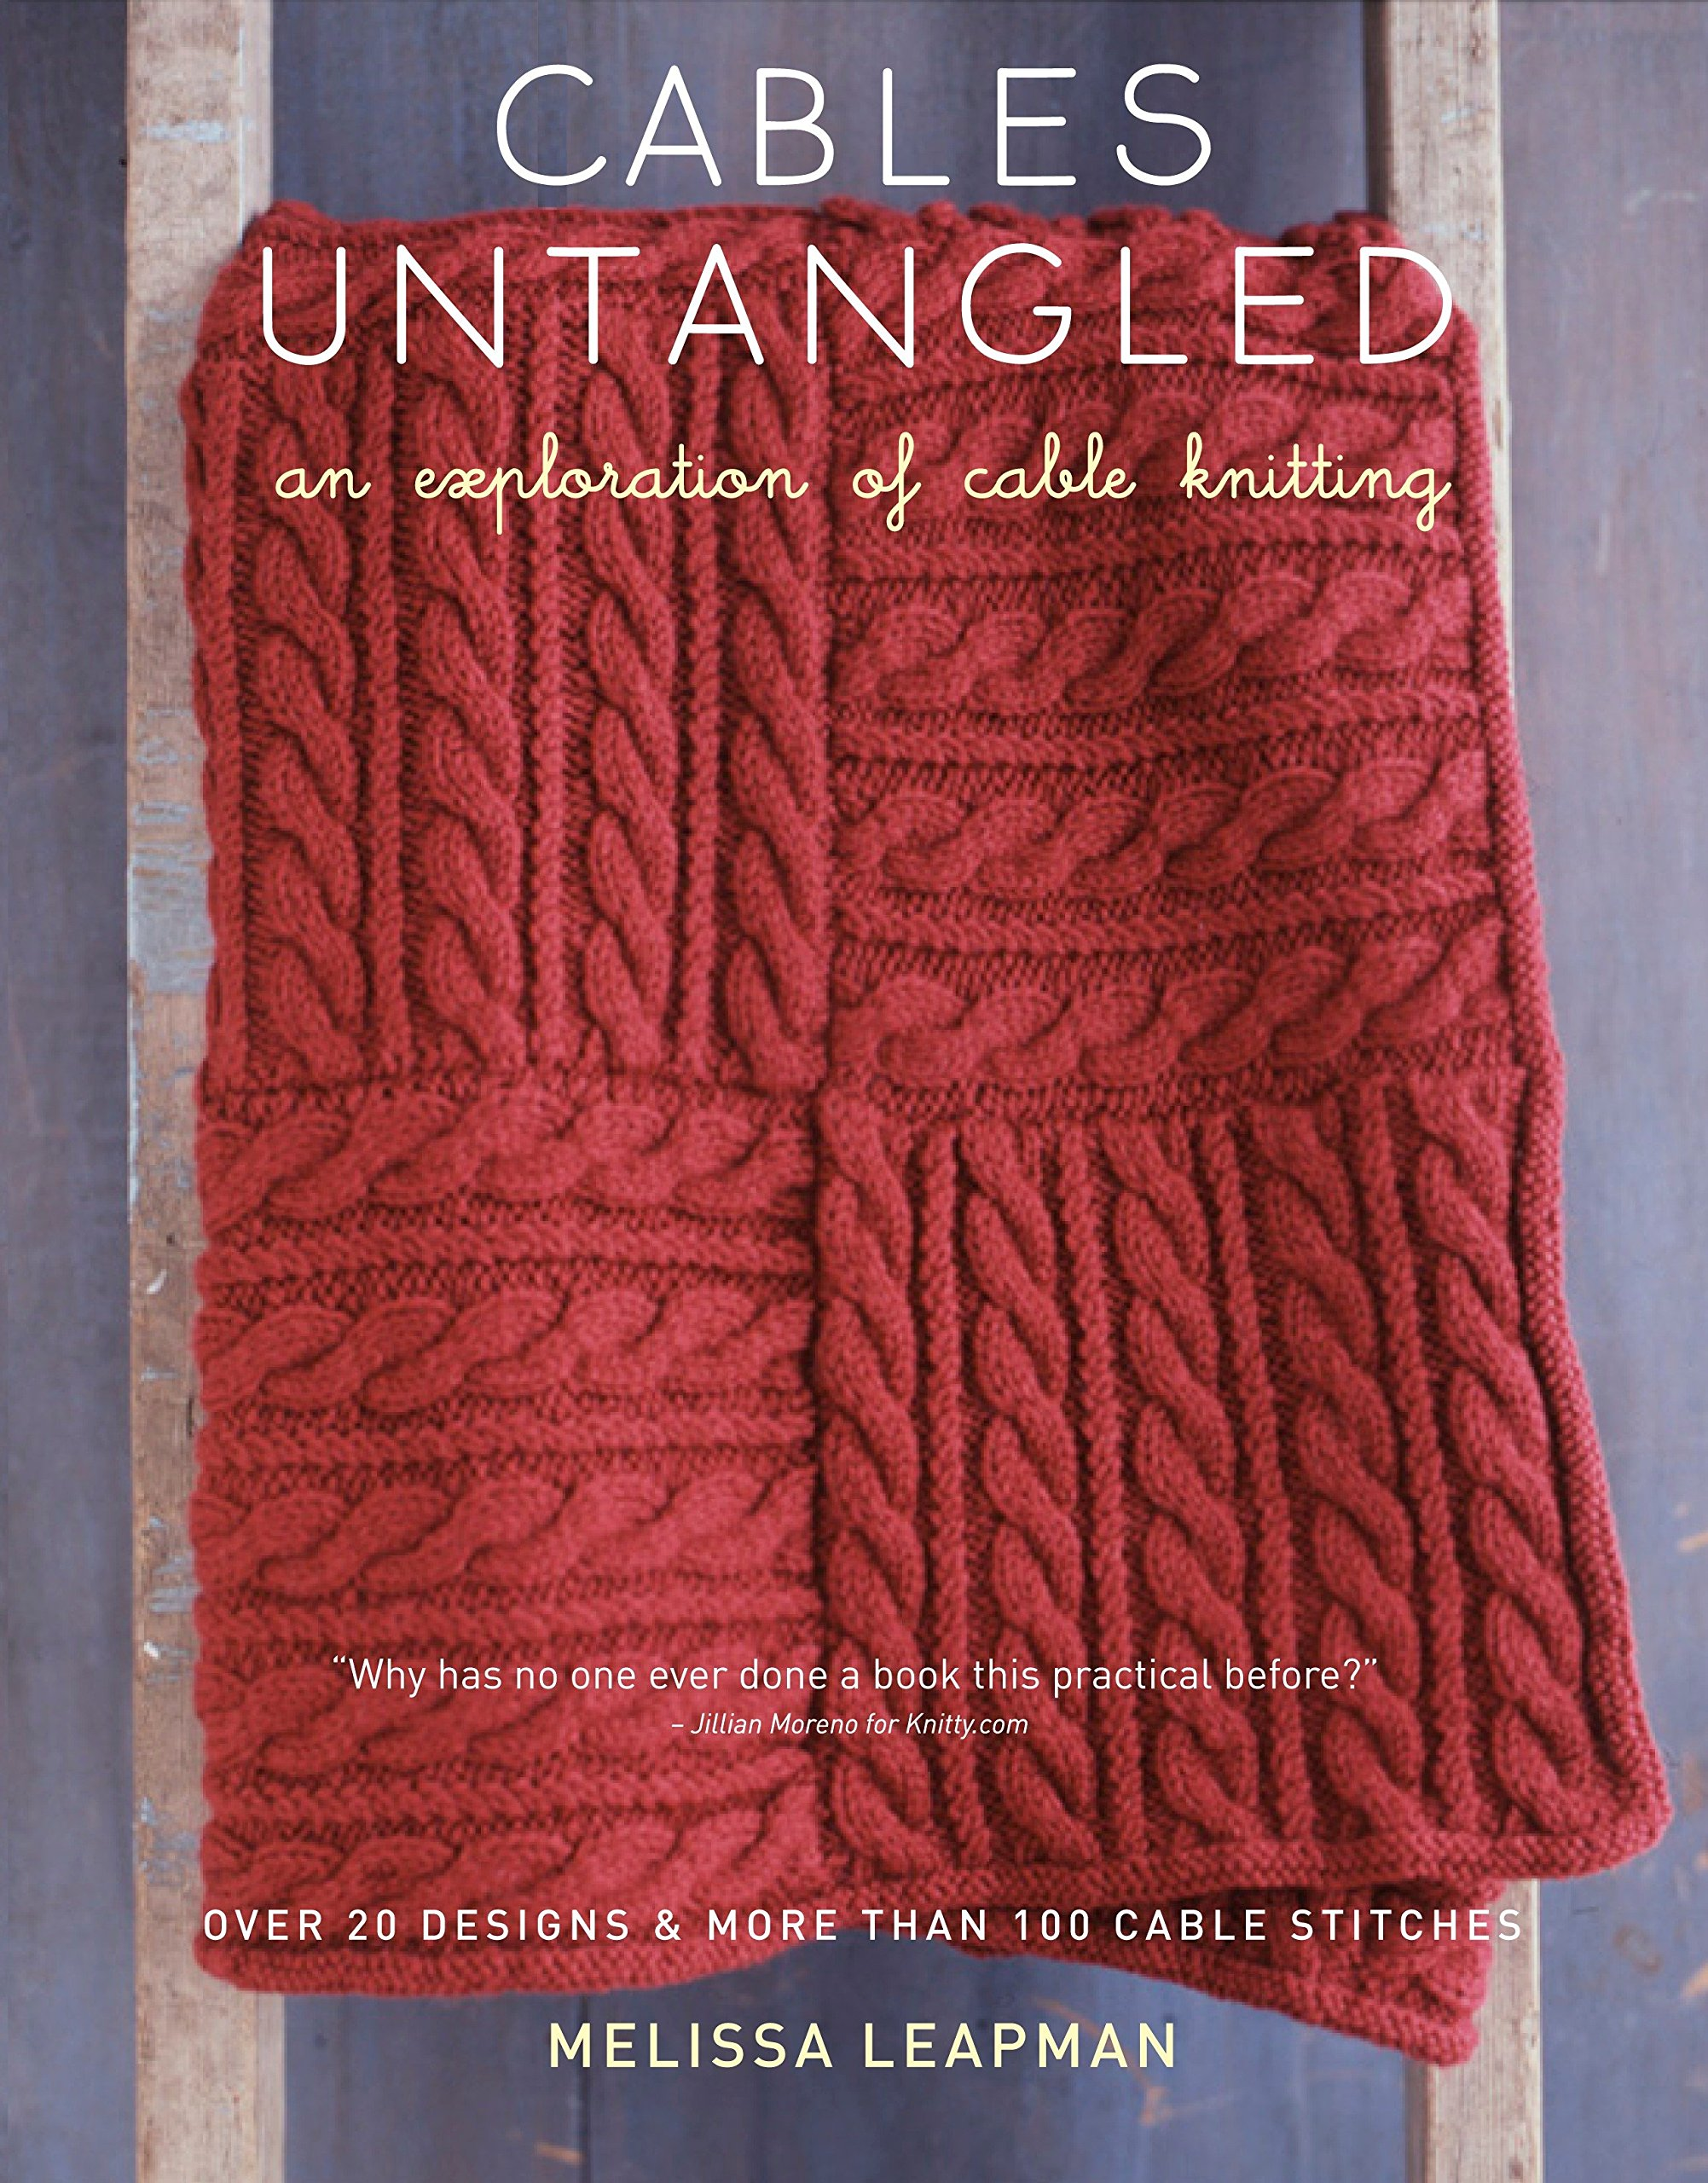 Book Cover Knitting Pattern ~ Cables untangled an exploration of cable knitting melissa